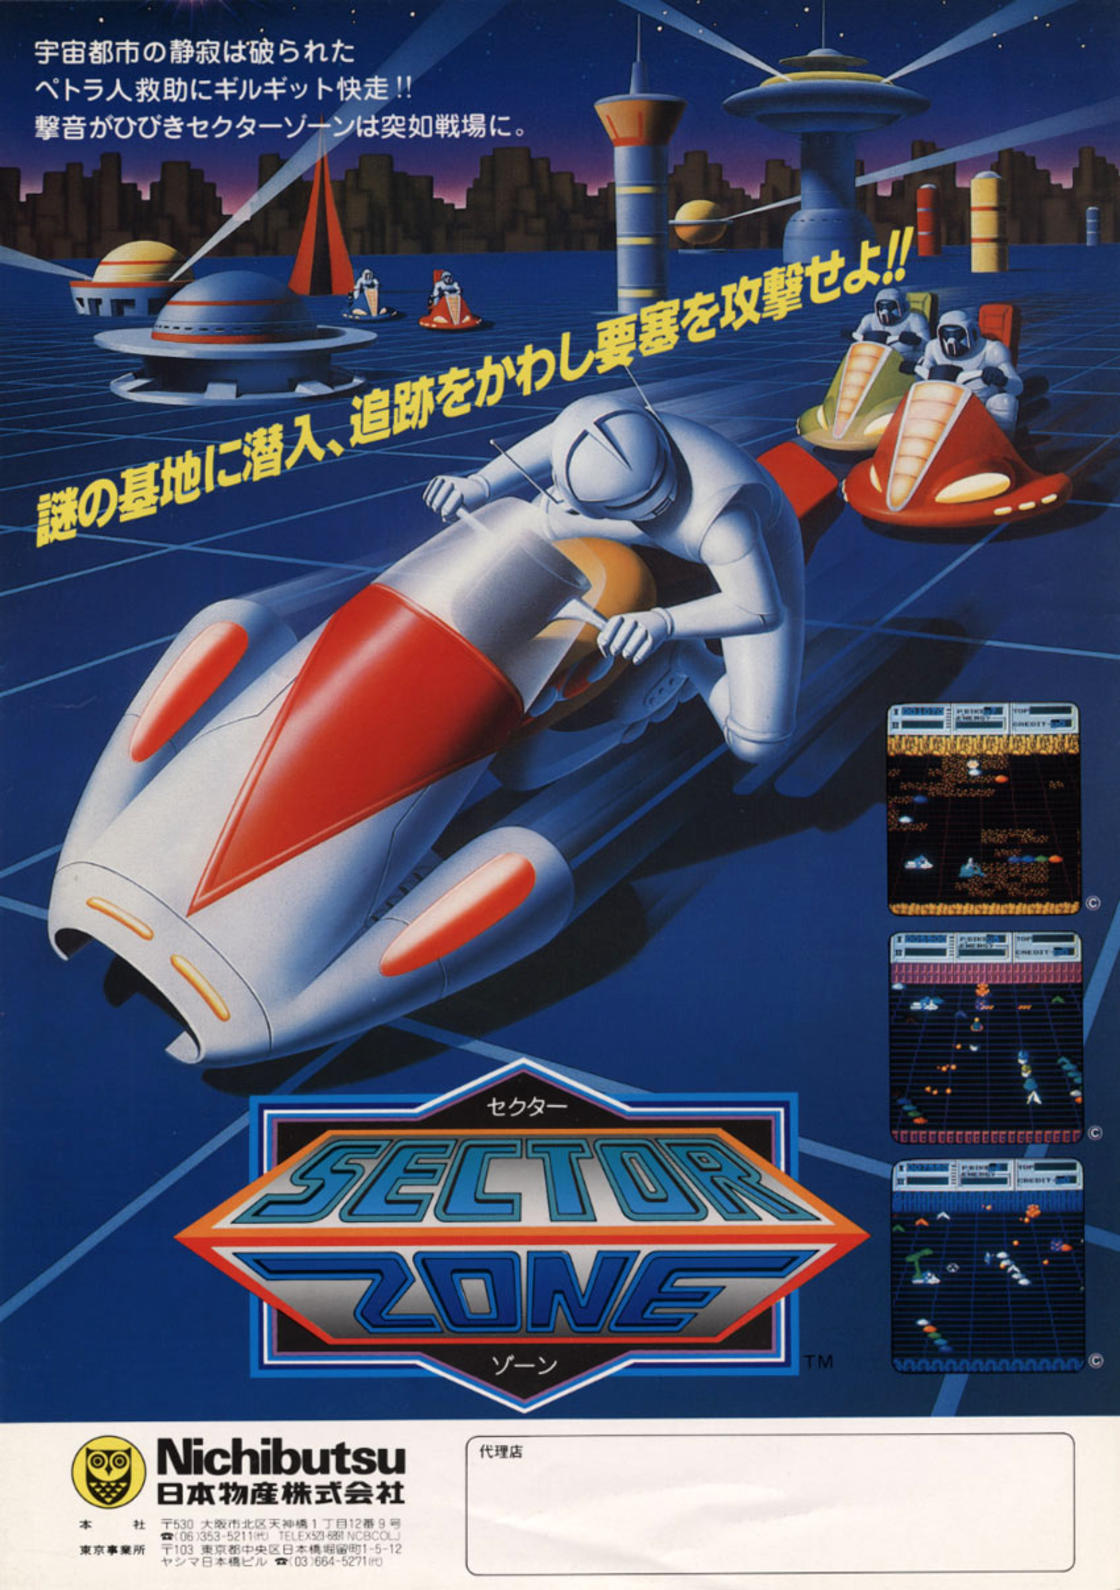 publicites-japonaises-jeux-video-1980-19.jpg